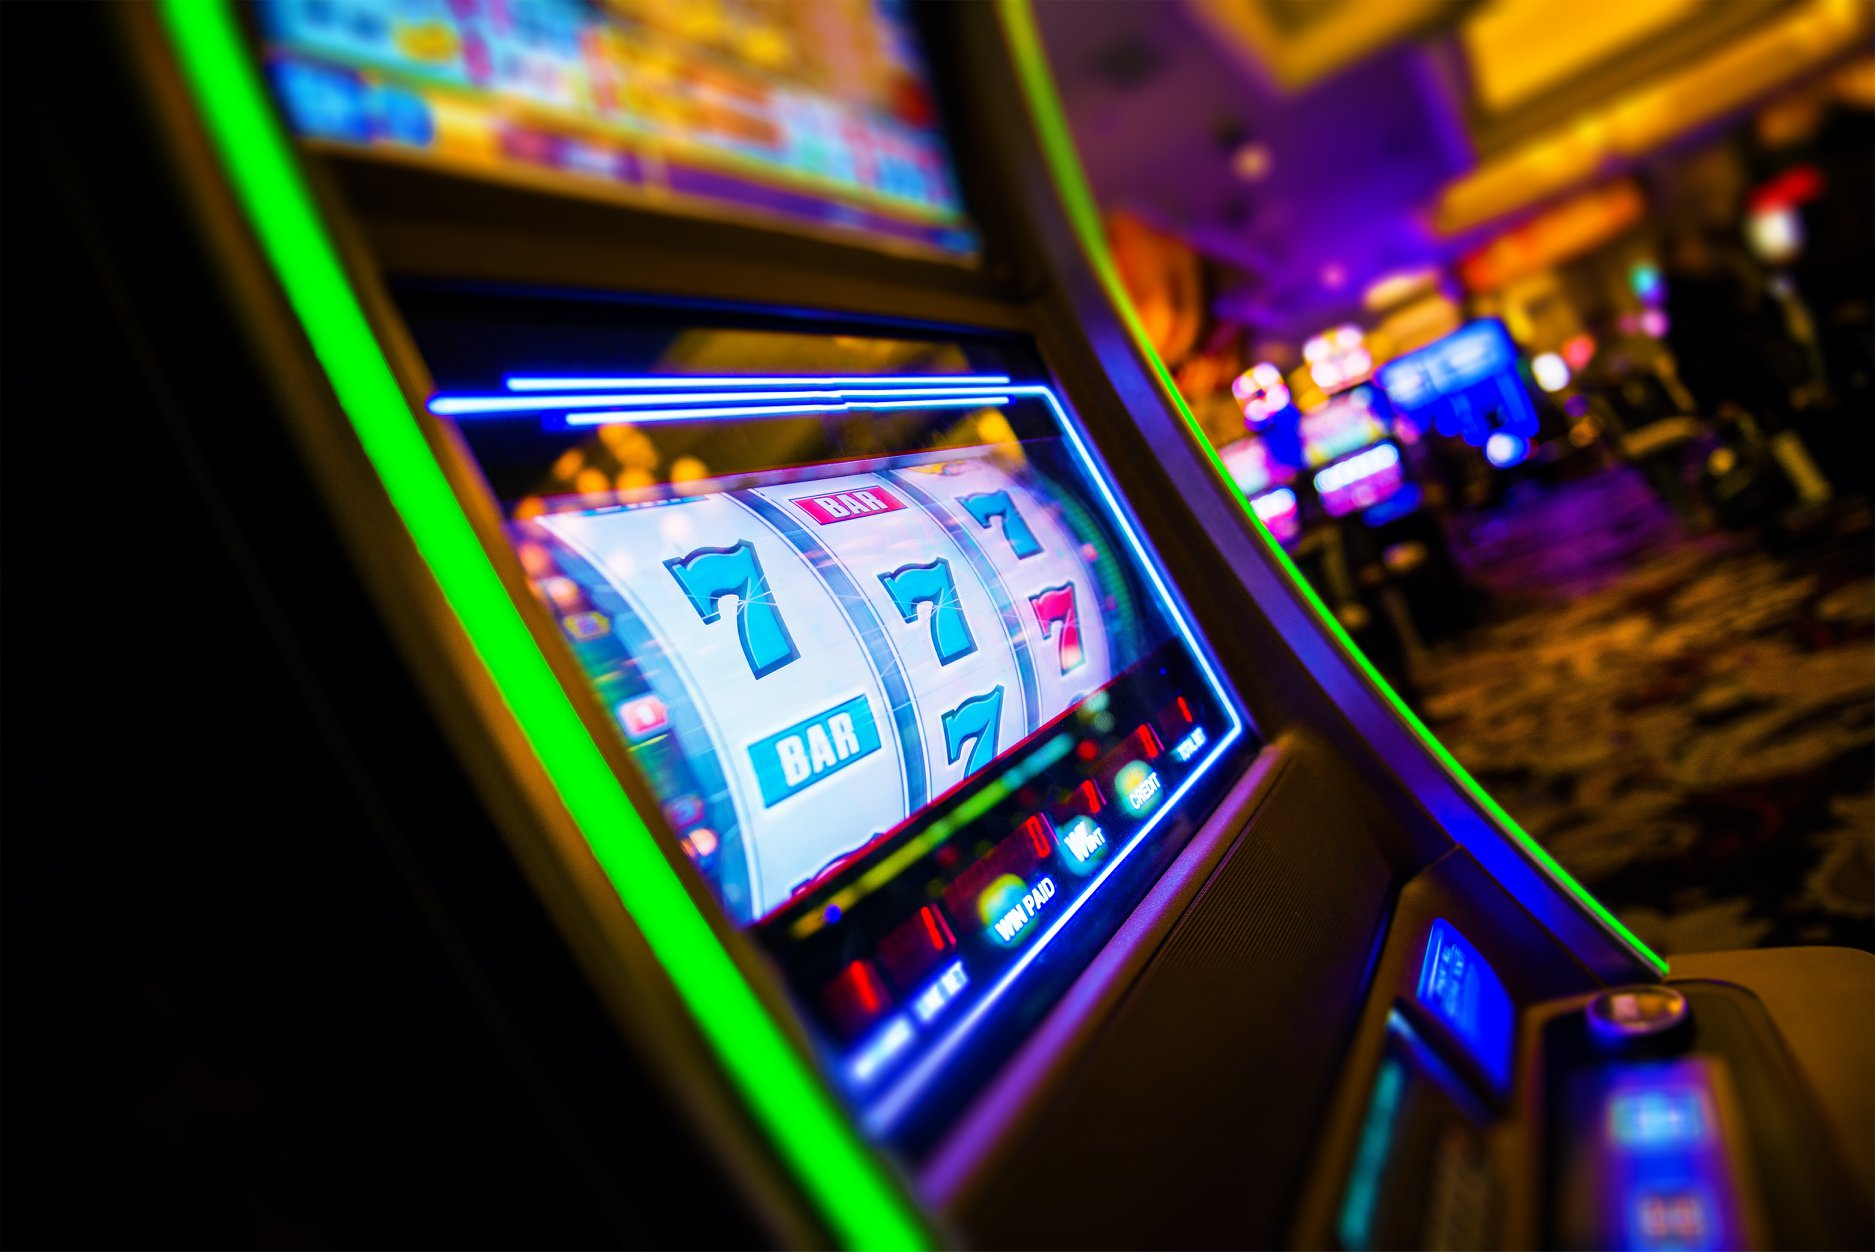 Karuk Tribe announces grand opening for long-awaited gaming facility